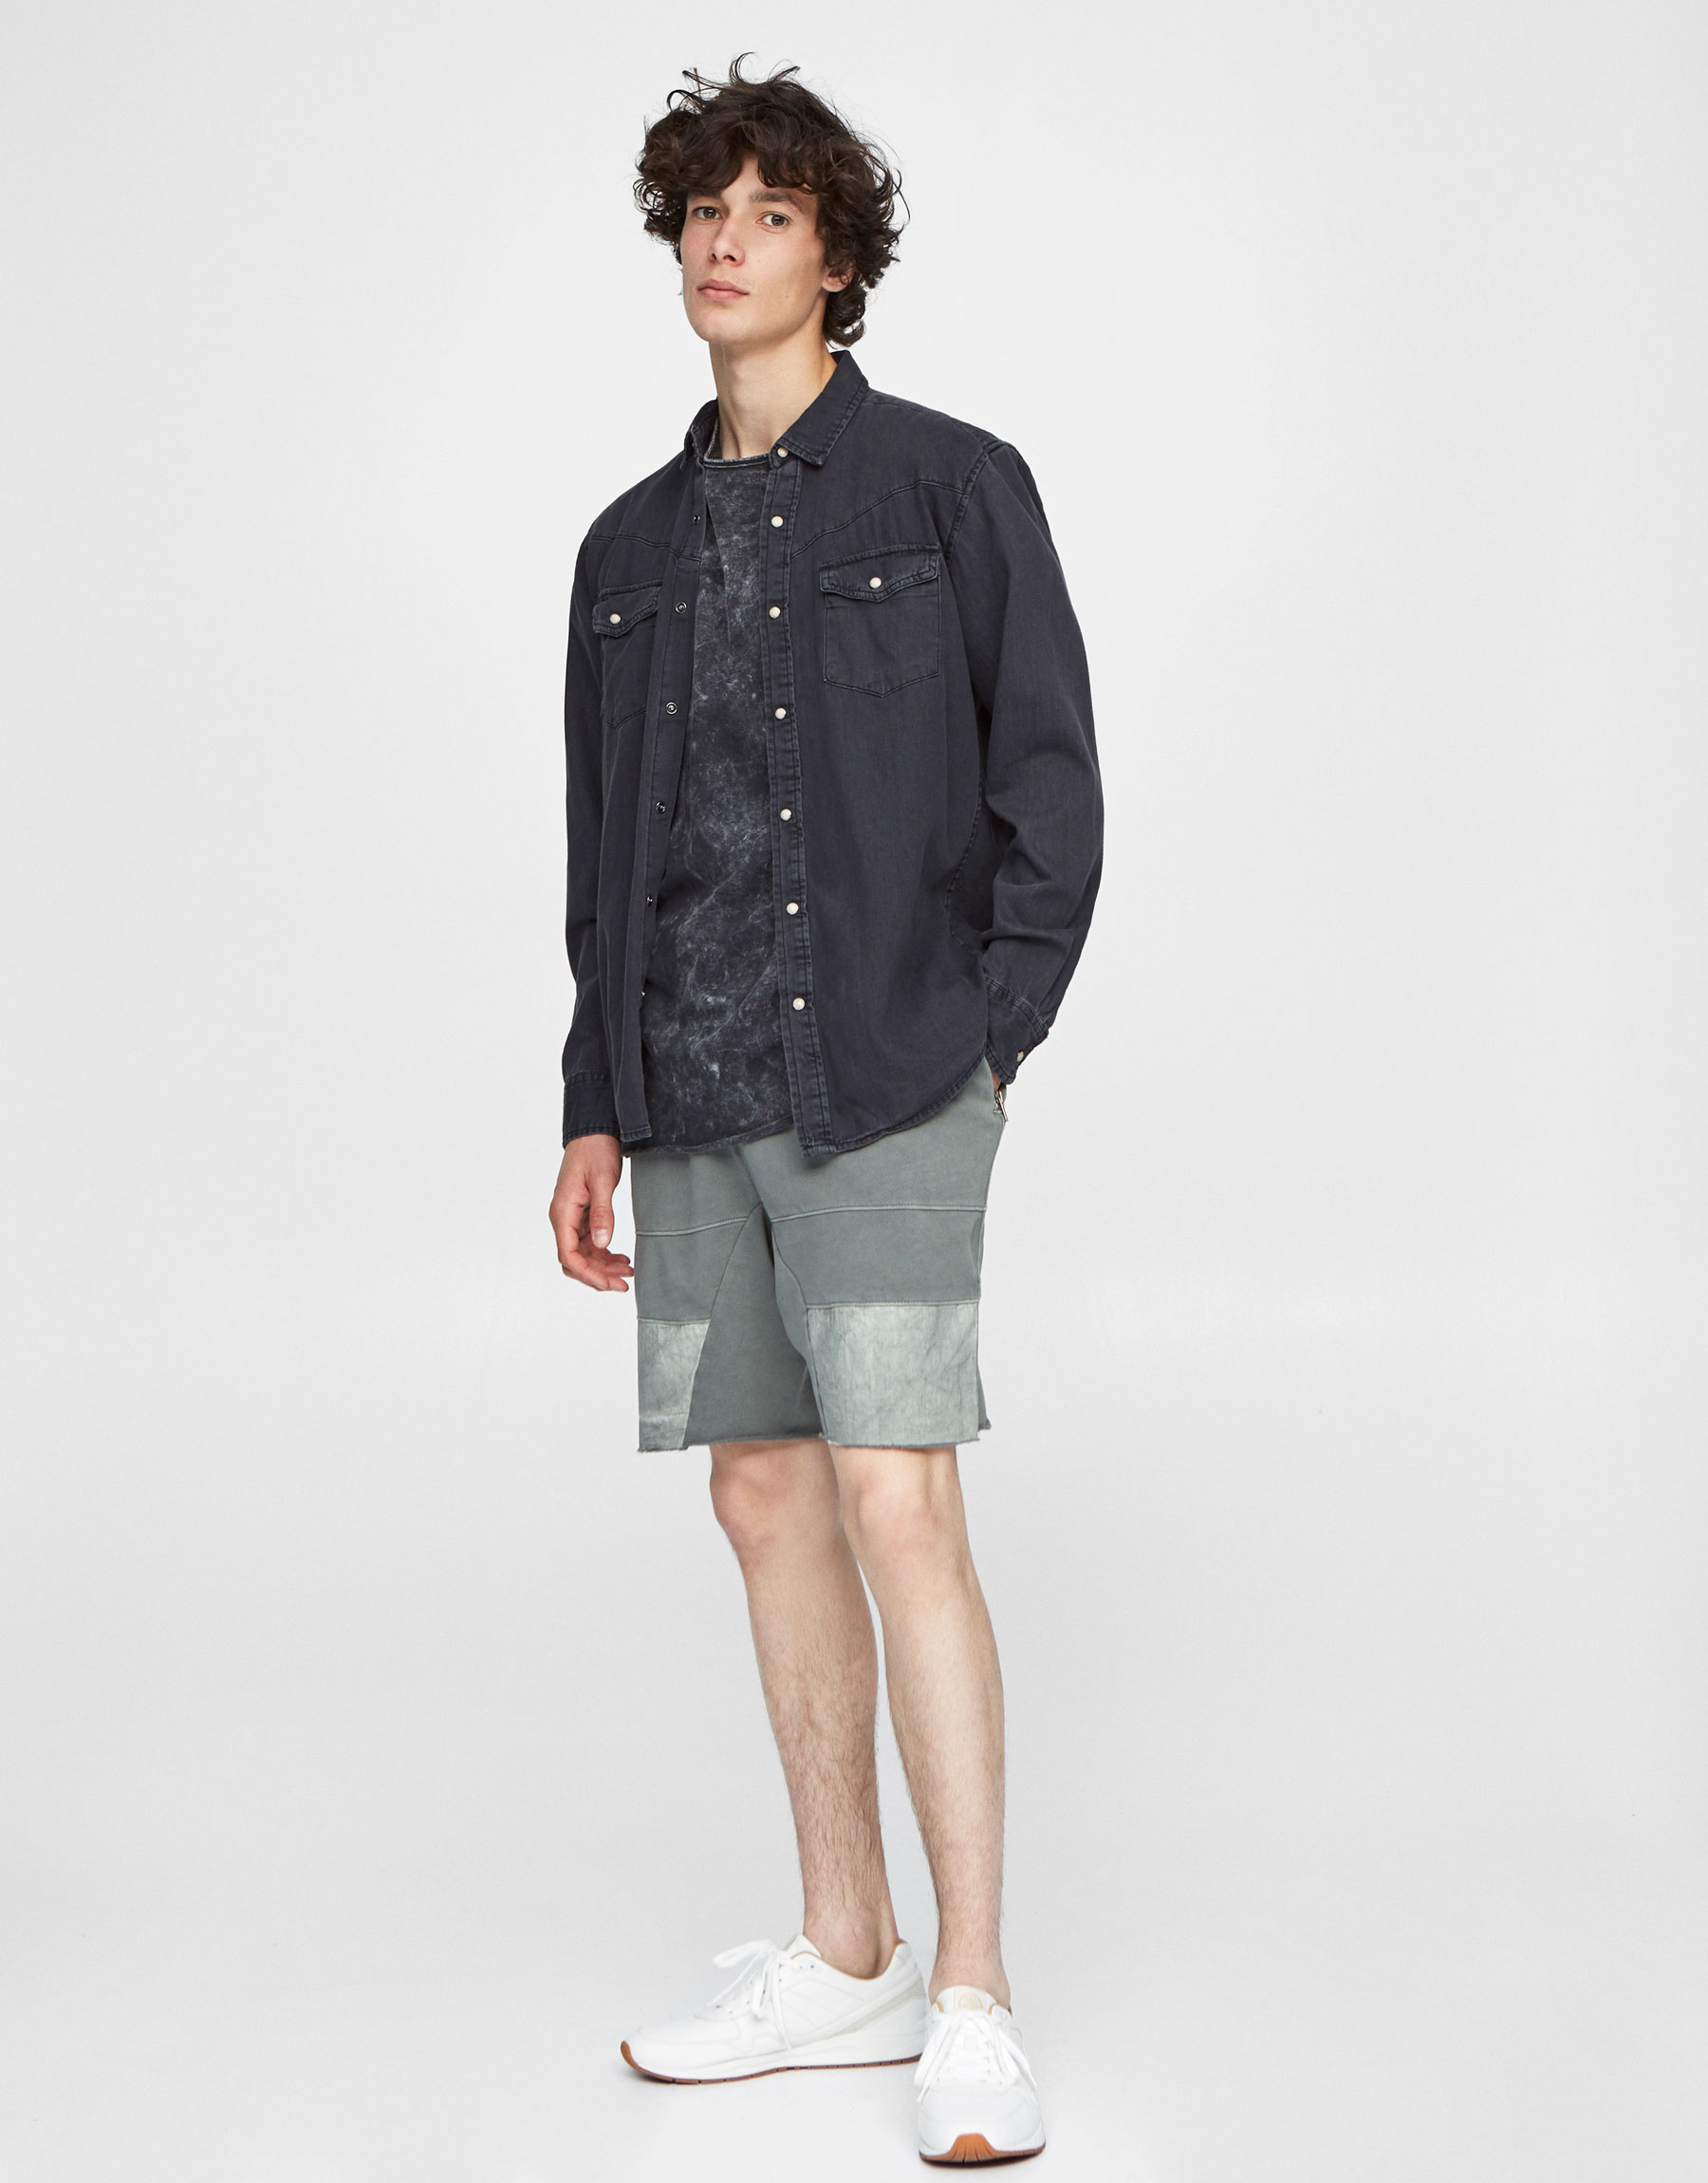 Faded grey jogging Bermuda shorts